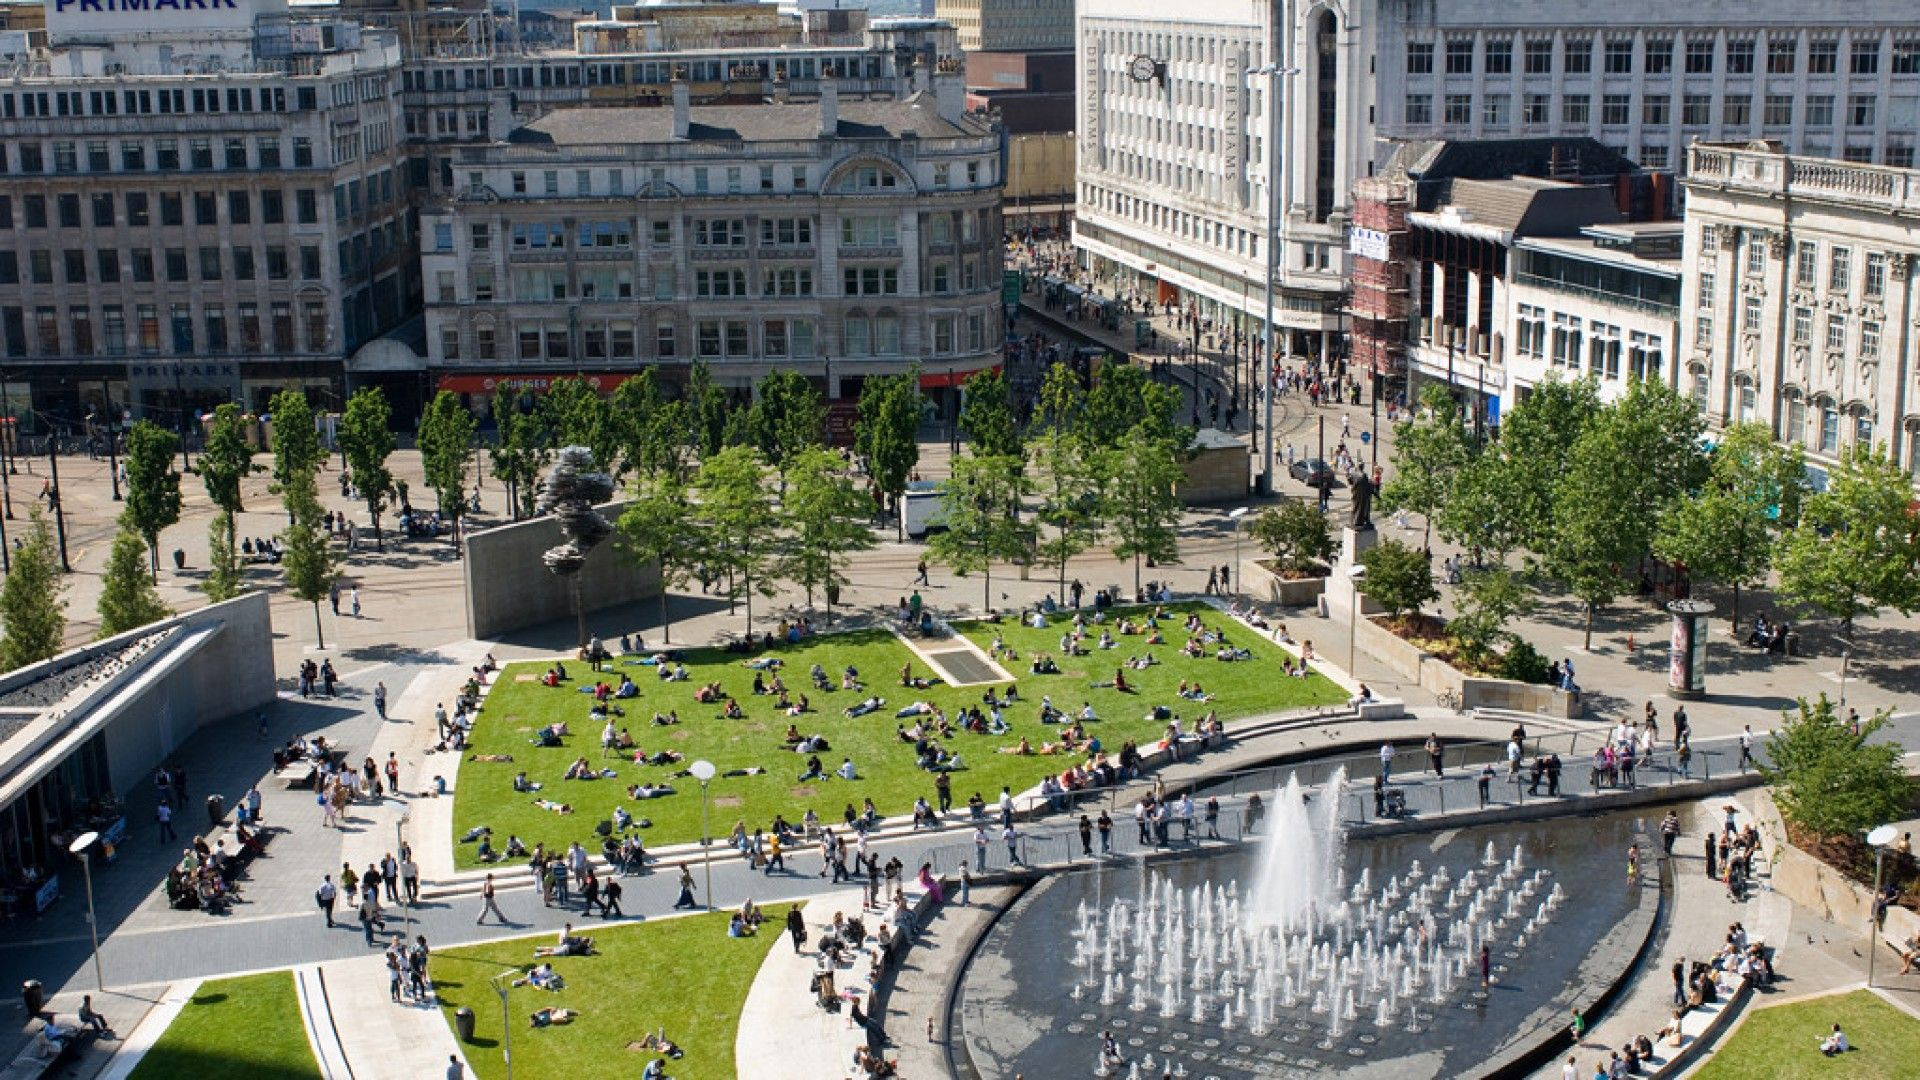 Piccadilly Gardens - Relax in Manchester